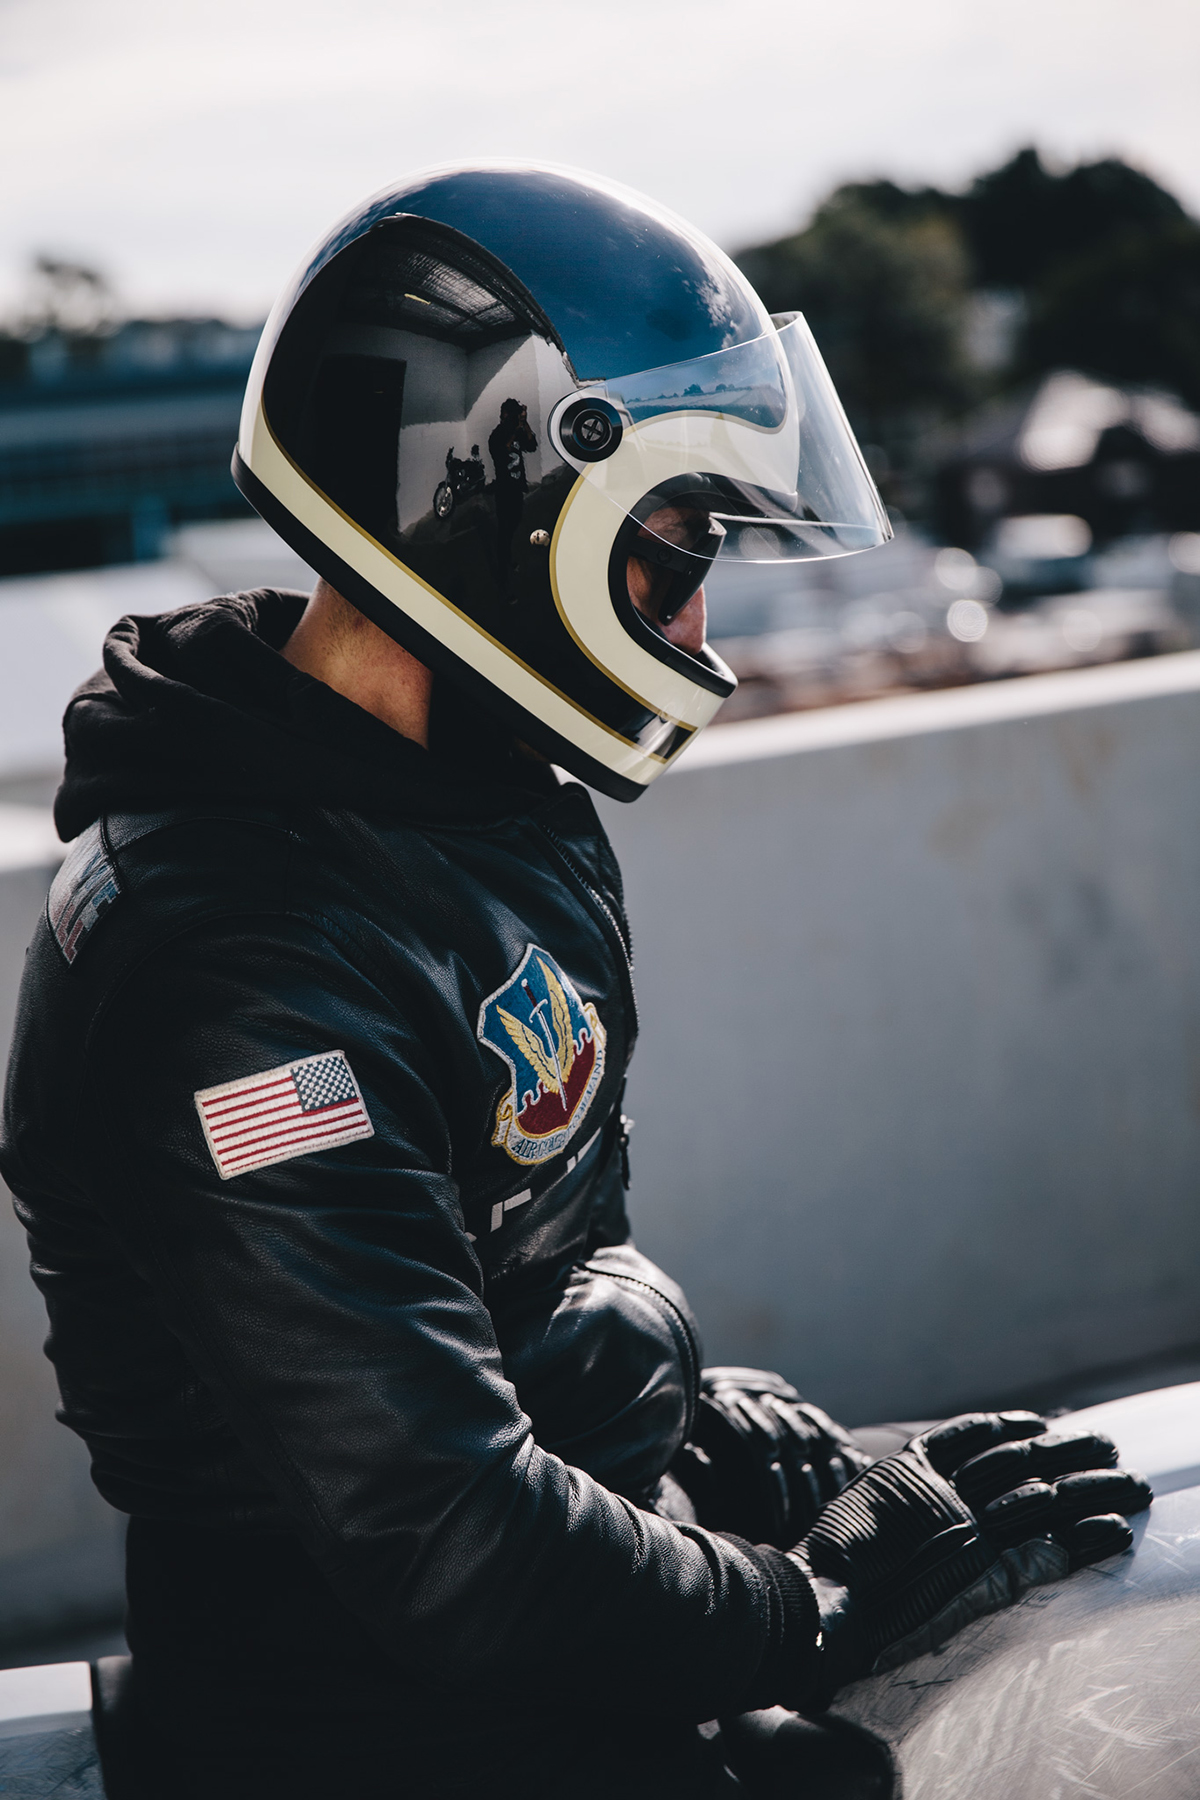 BMW_RNineT_Cafe_Racer_7377